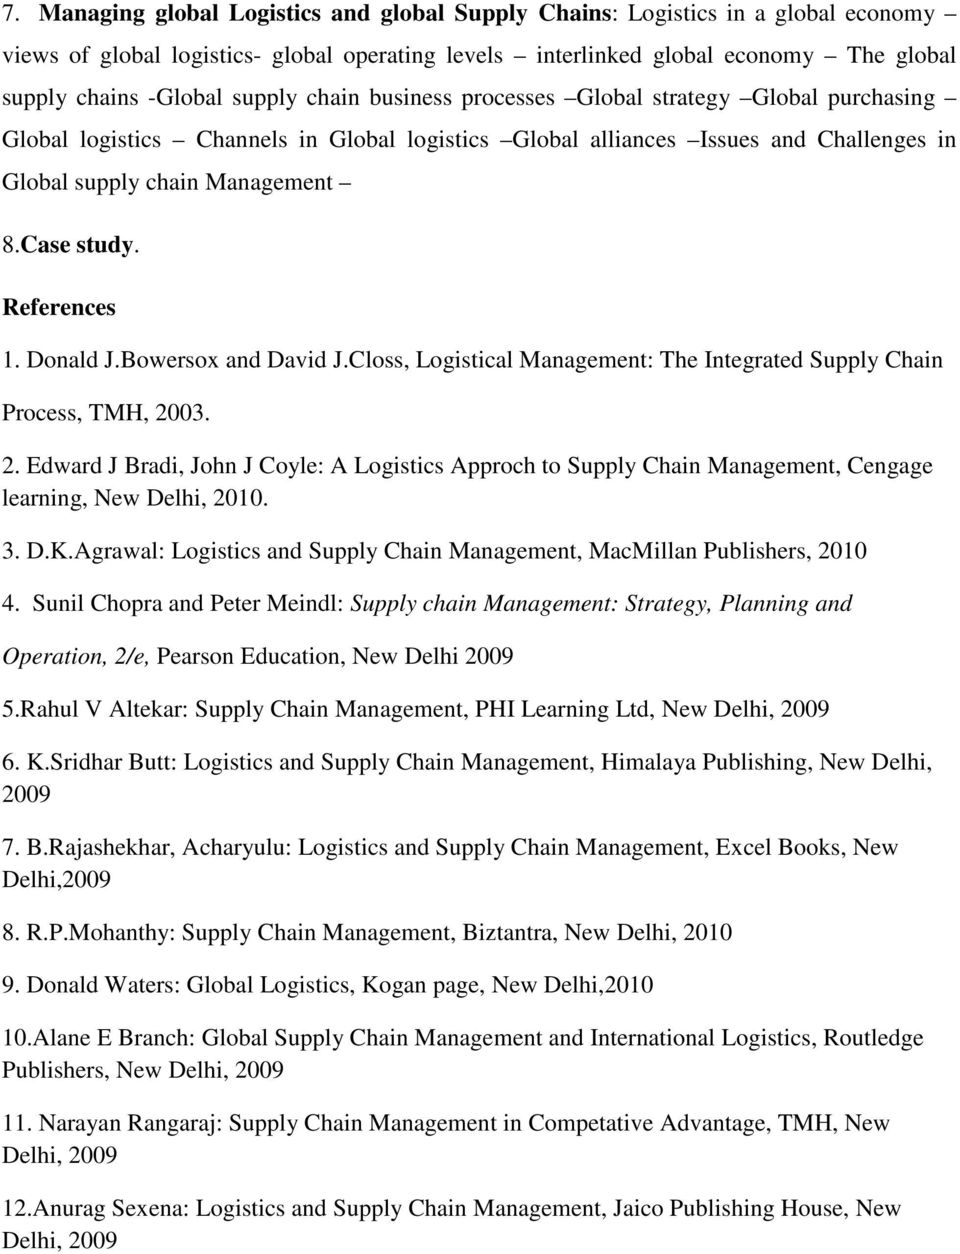 References 1. Donald J.Bowersox and David J.Closs, Logistical Management: The Integrated Supply Chain Process, TMH, 20